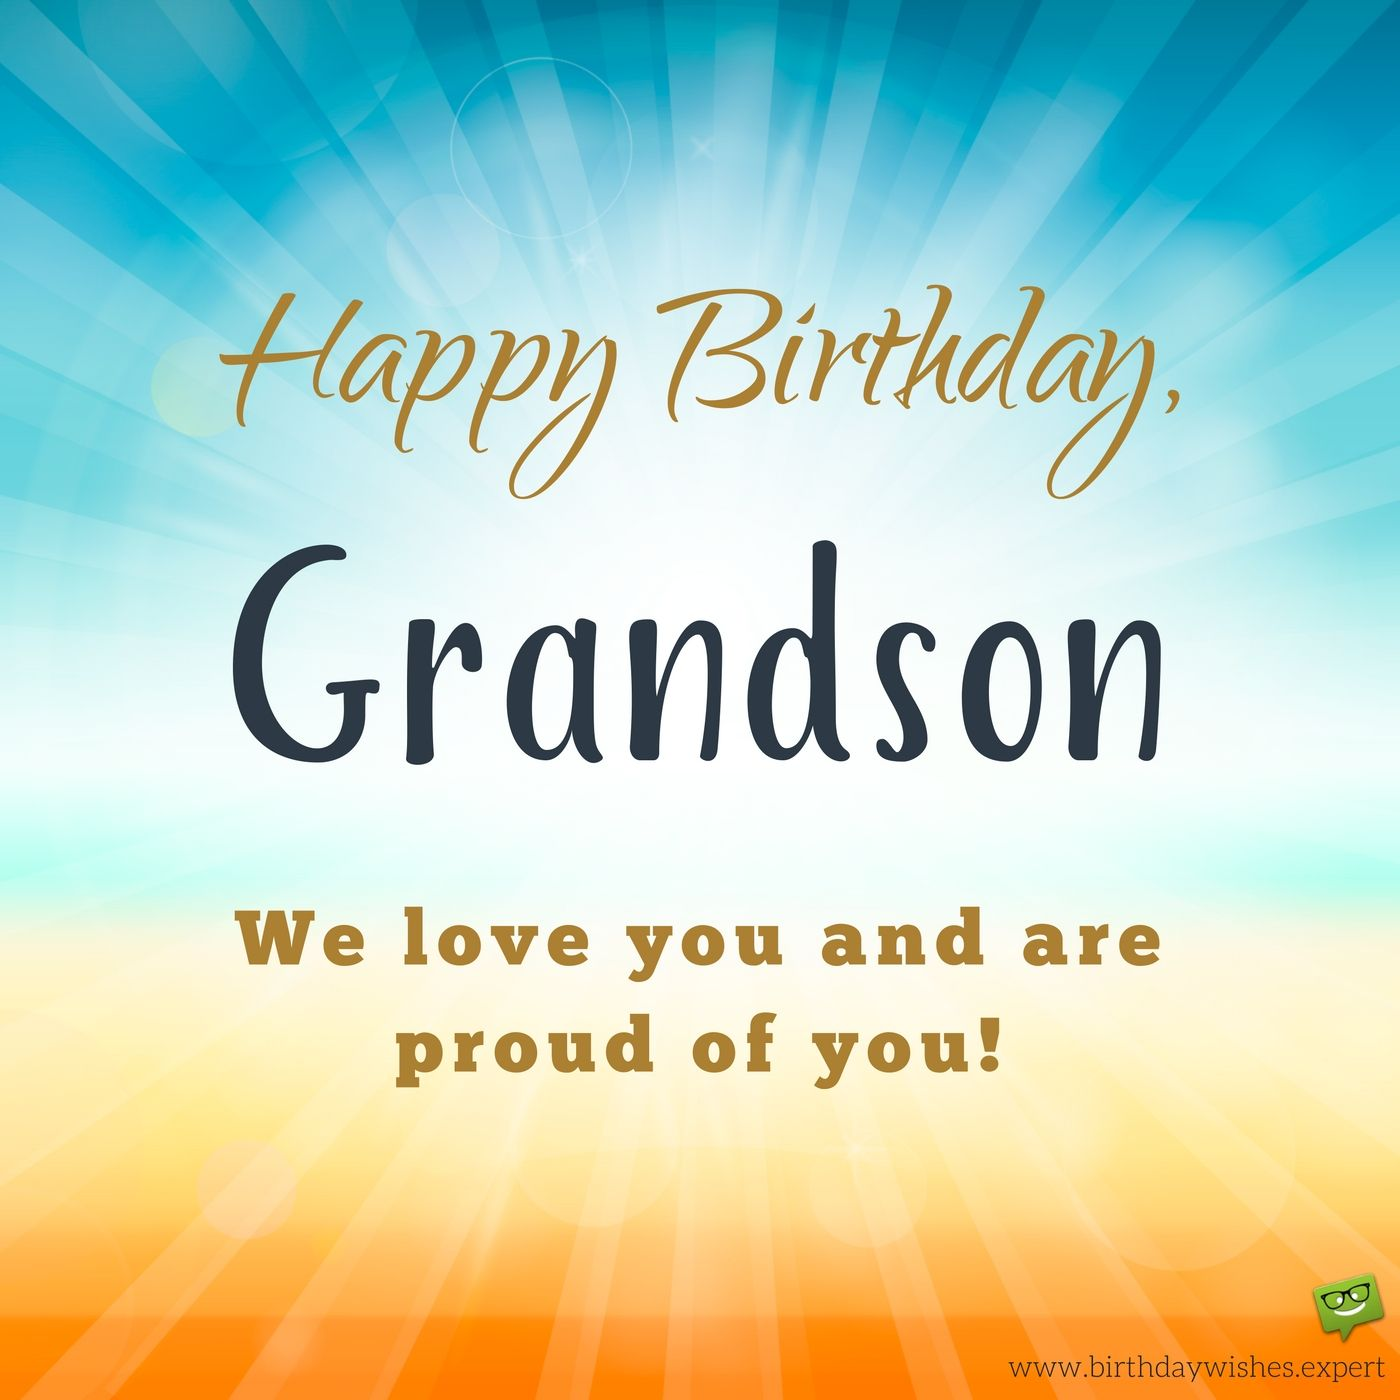 From your hitech grandma and grandpa birthday wishes for my